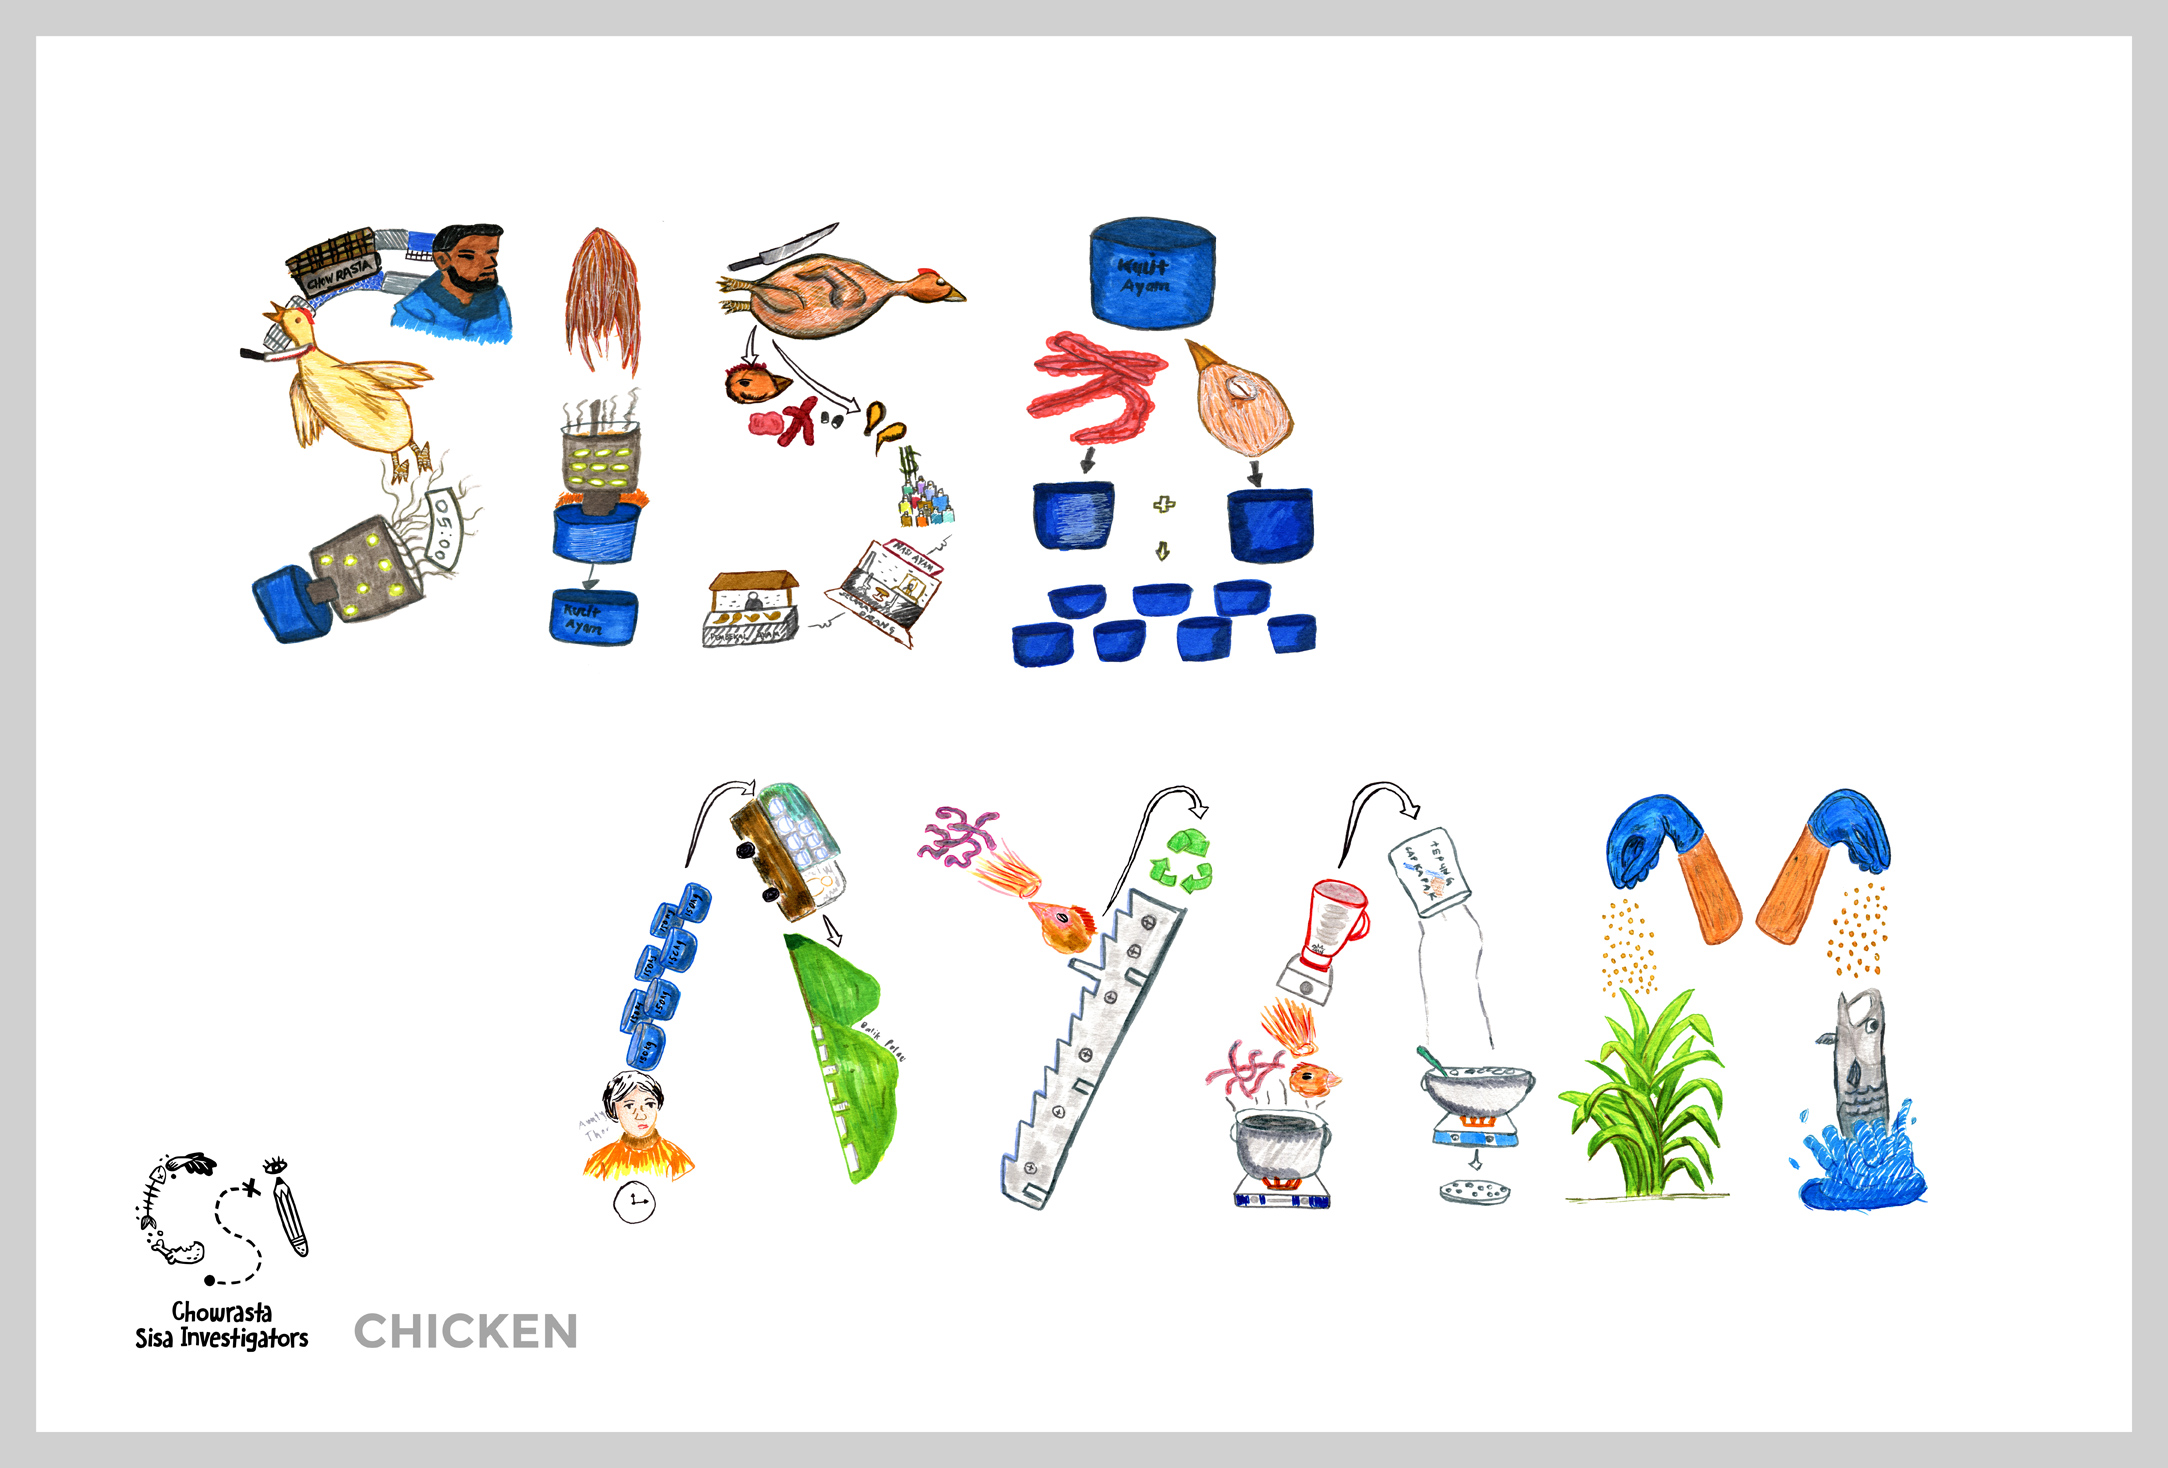 SISA AYAM  means 'chicken waste' in Malay. The poster depicts the process of slaughtering, cleaning, and preparing chickens for sale, then traces how the discarded parts are taken to be turned into fertiliser or fish food.   Team members: Aishah, Nizar, Safiy, Hanis, Zikry